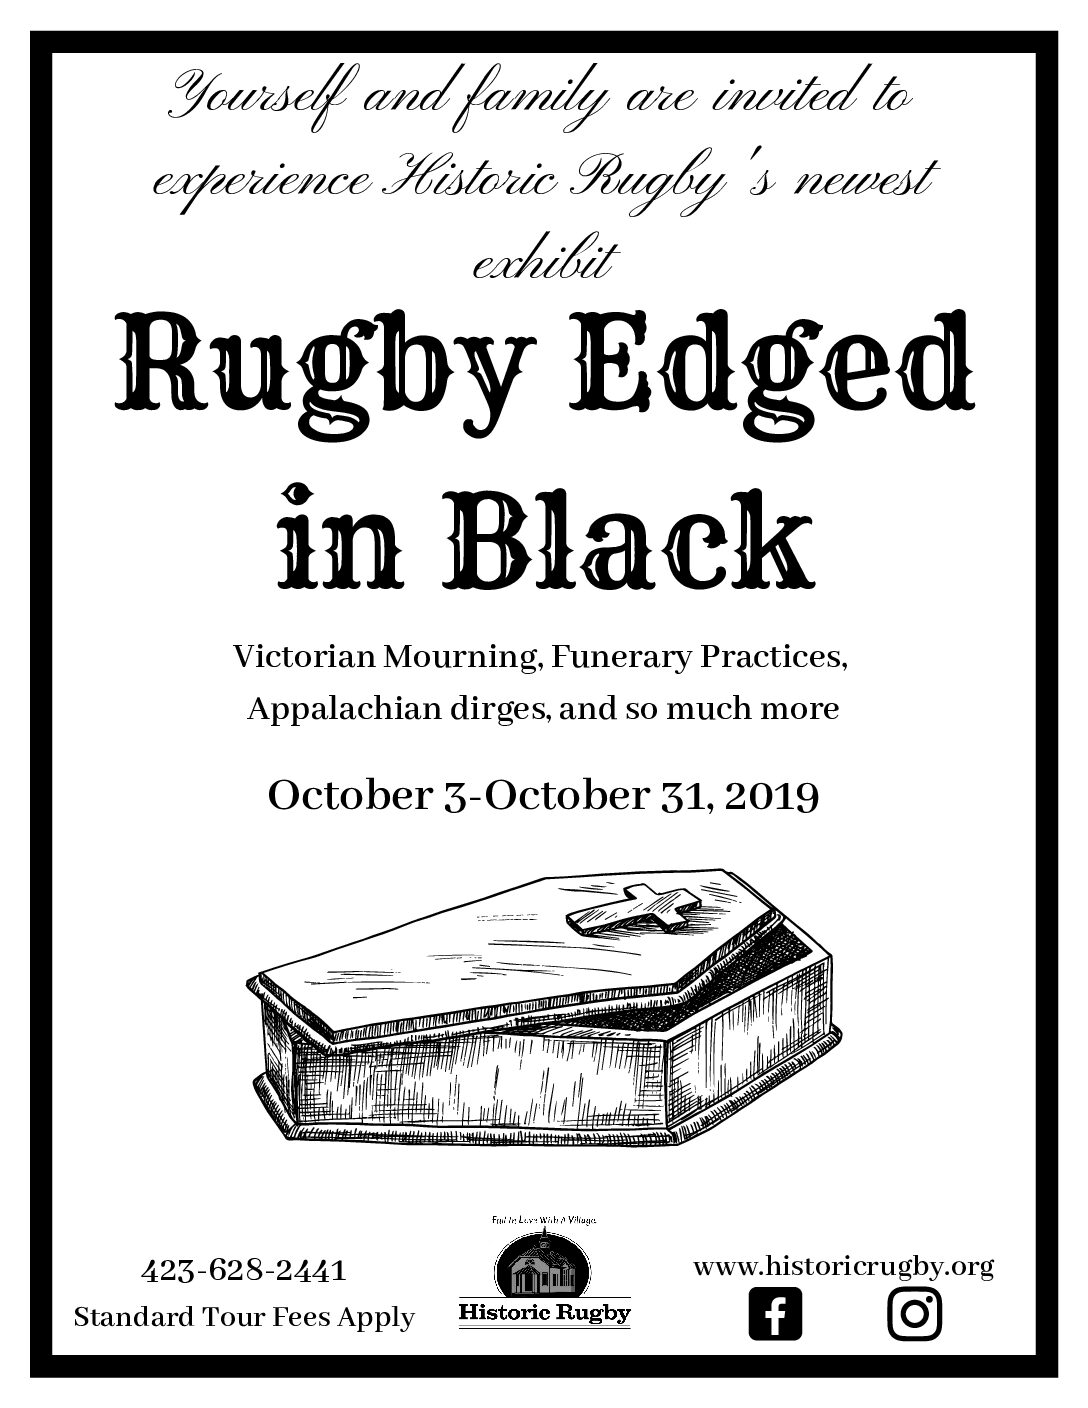 Rugby Edged in Black, Thursdays thru Mondays